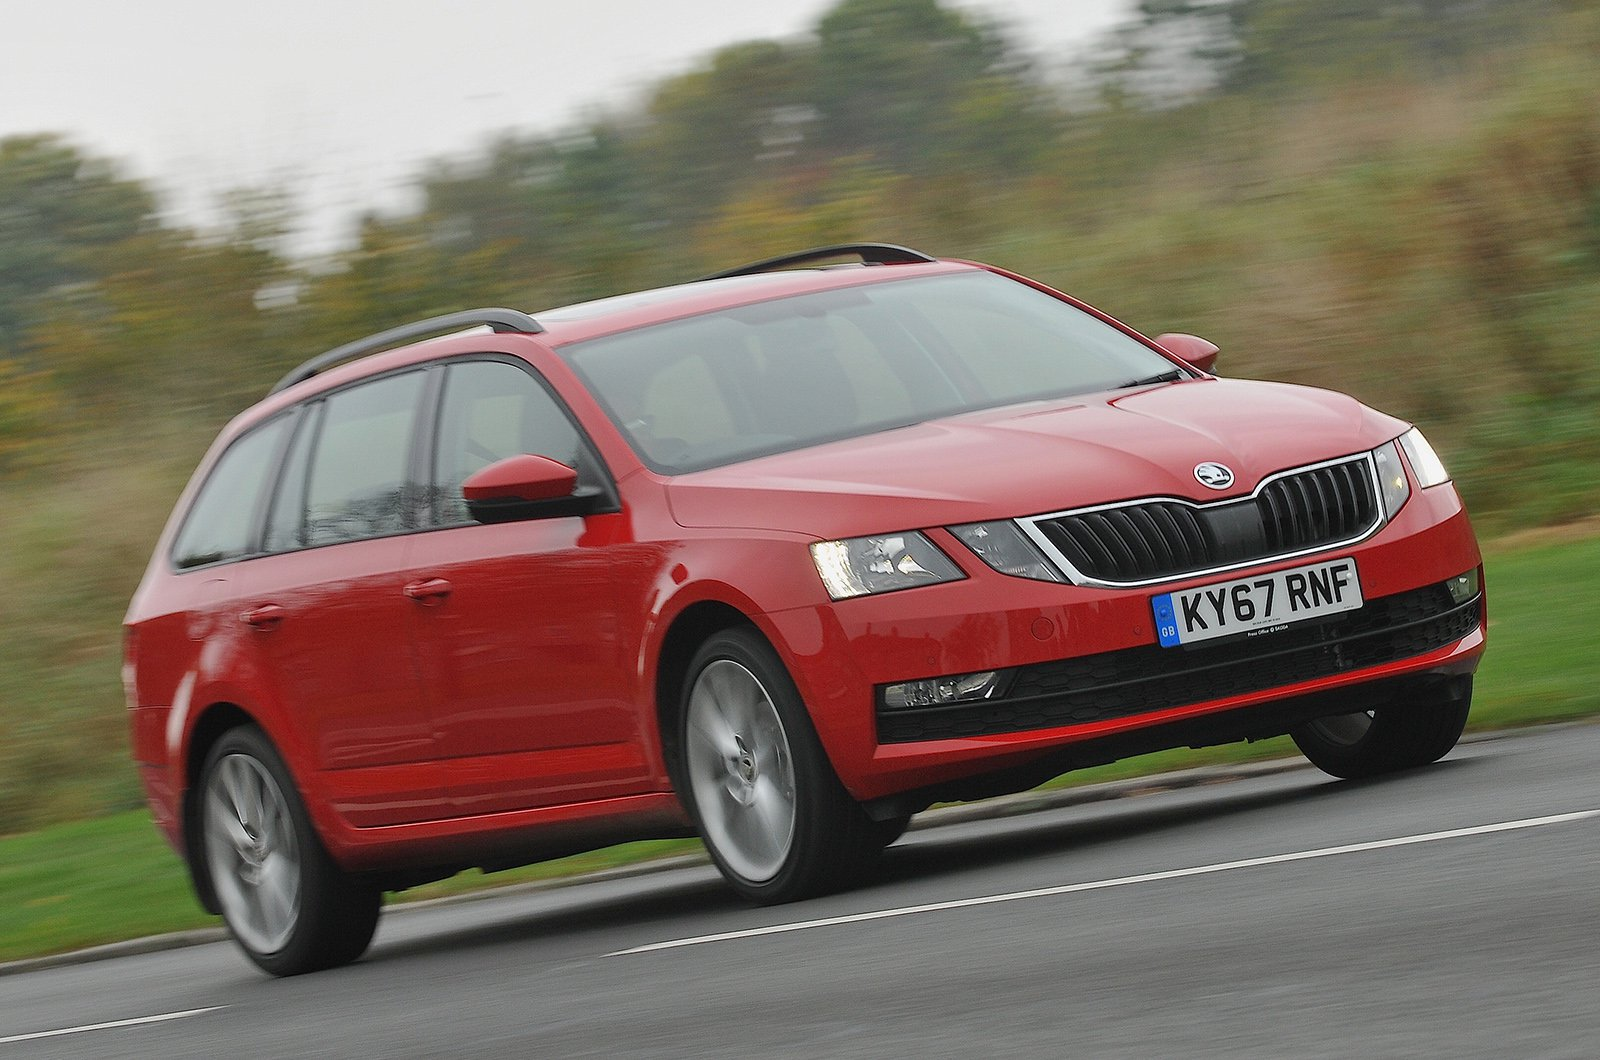 Used Skoda Octavia estate